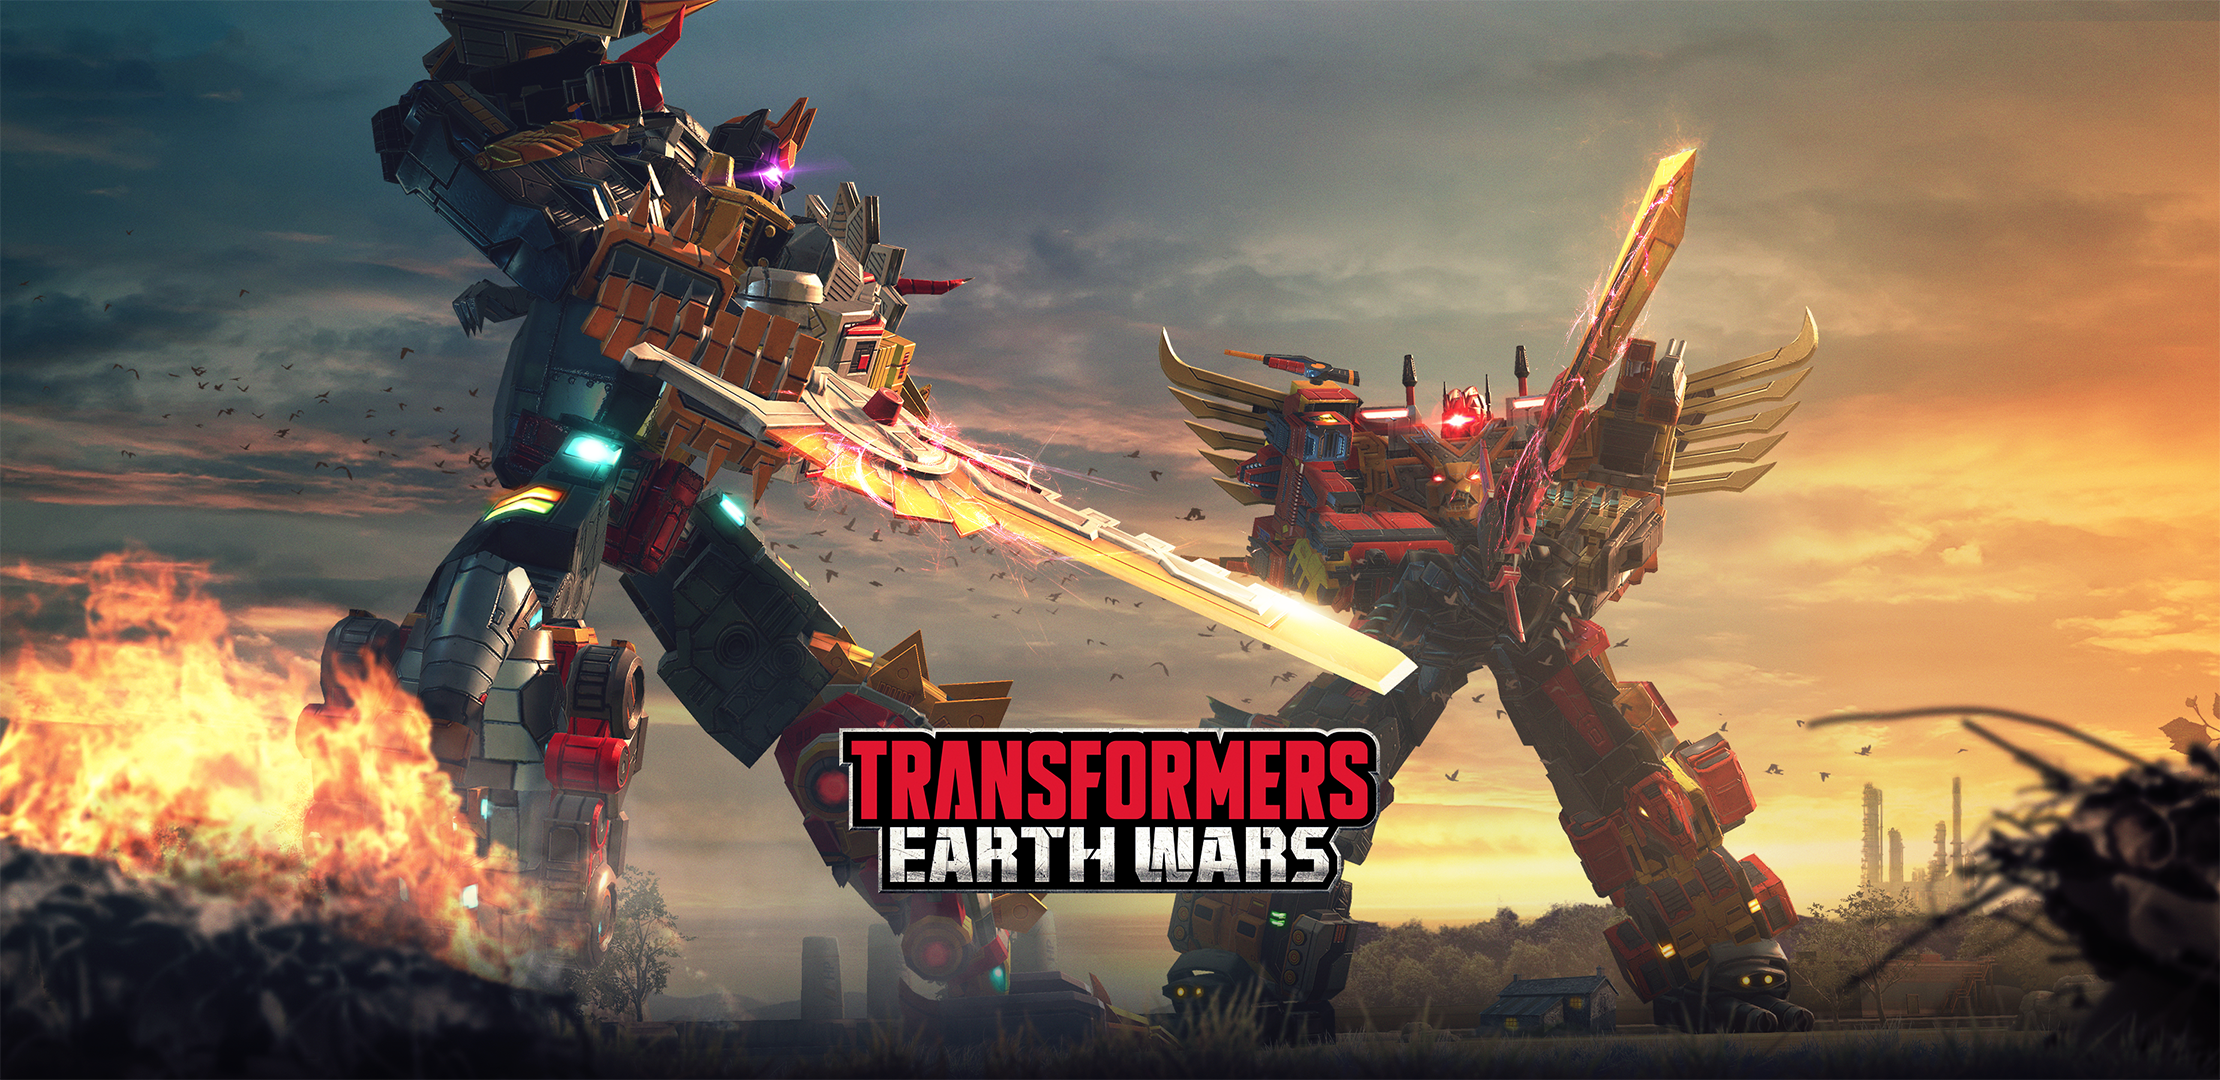 Transformers News: Transformers: Earth Wars Update - Fright Night (plus Triple Changers Coming)